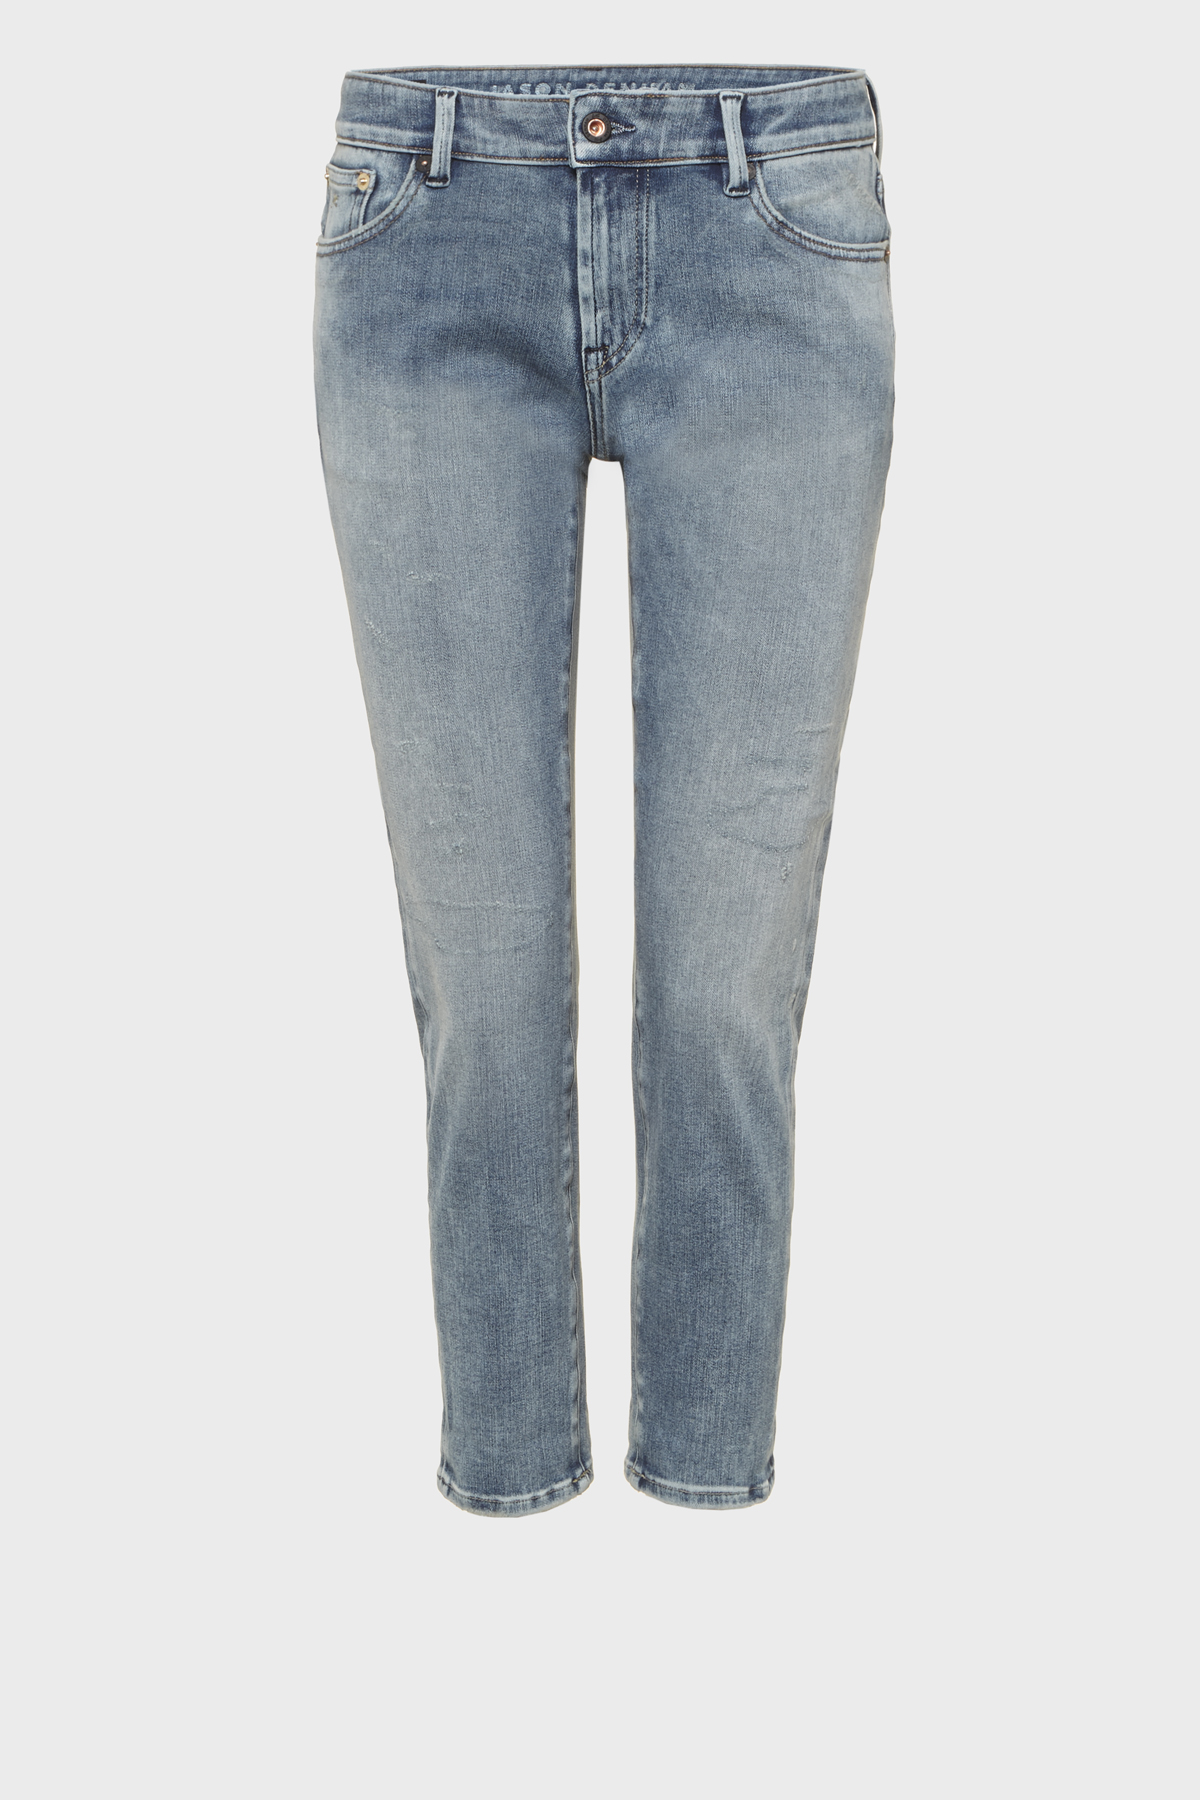 Monroe Girlfriend Tapered Fit Jeans JDCS